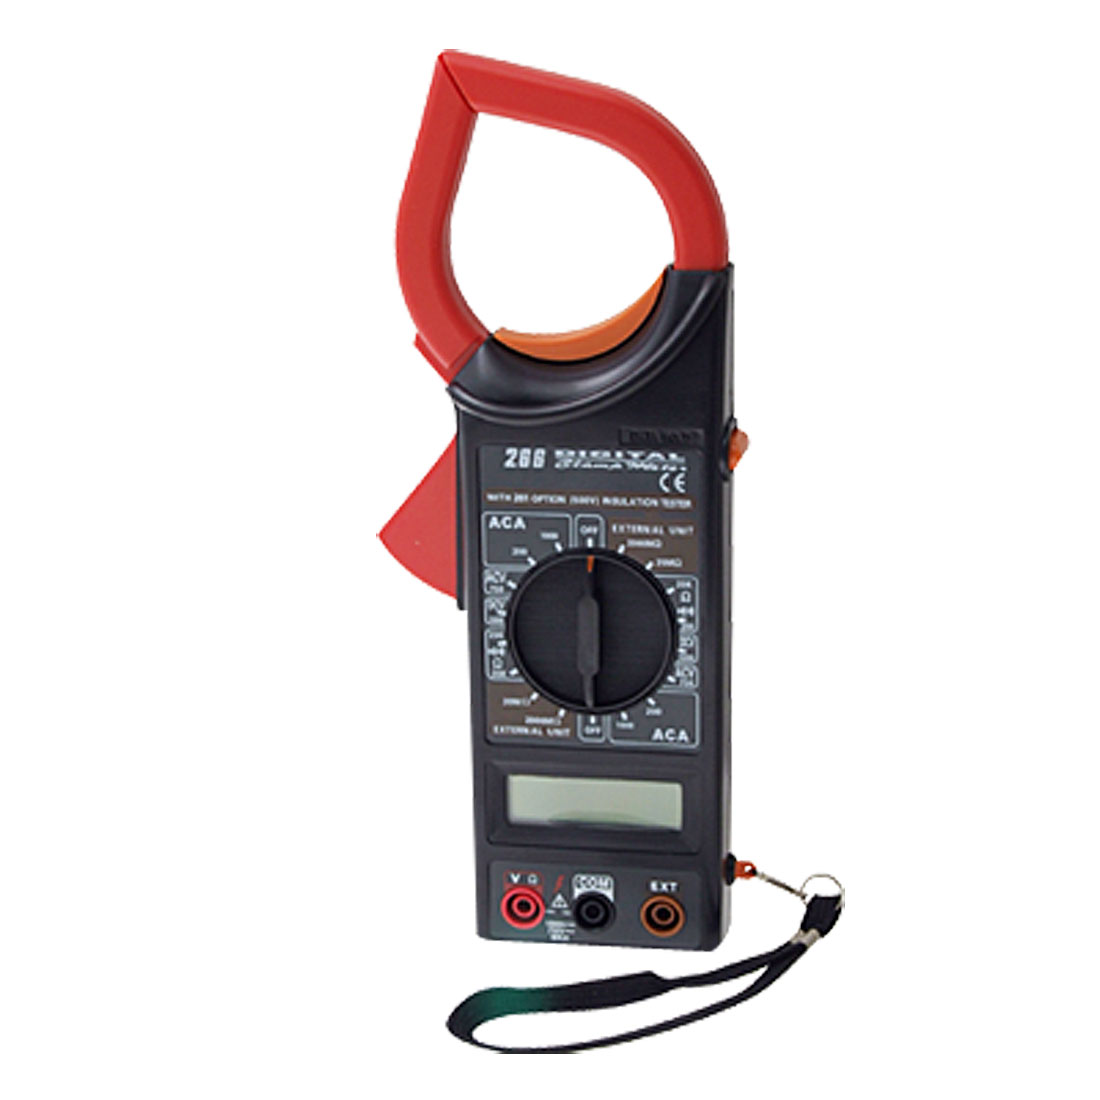 Portable Professional LCD Digital Clamp Meter Tester